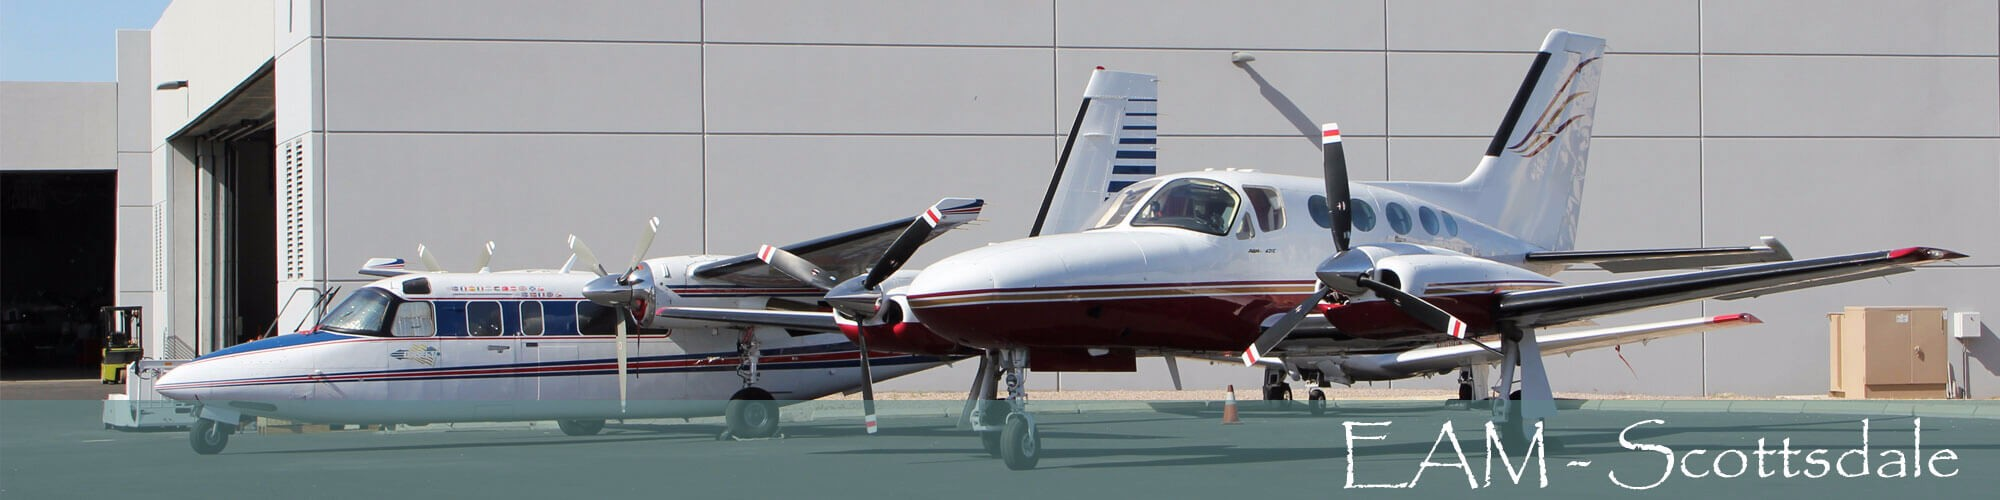 EAM-Scottsdale—Turboprop-airframe and engine service